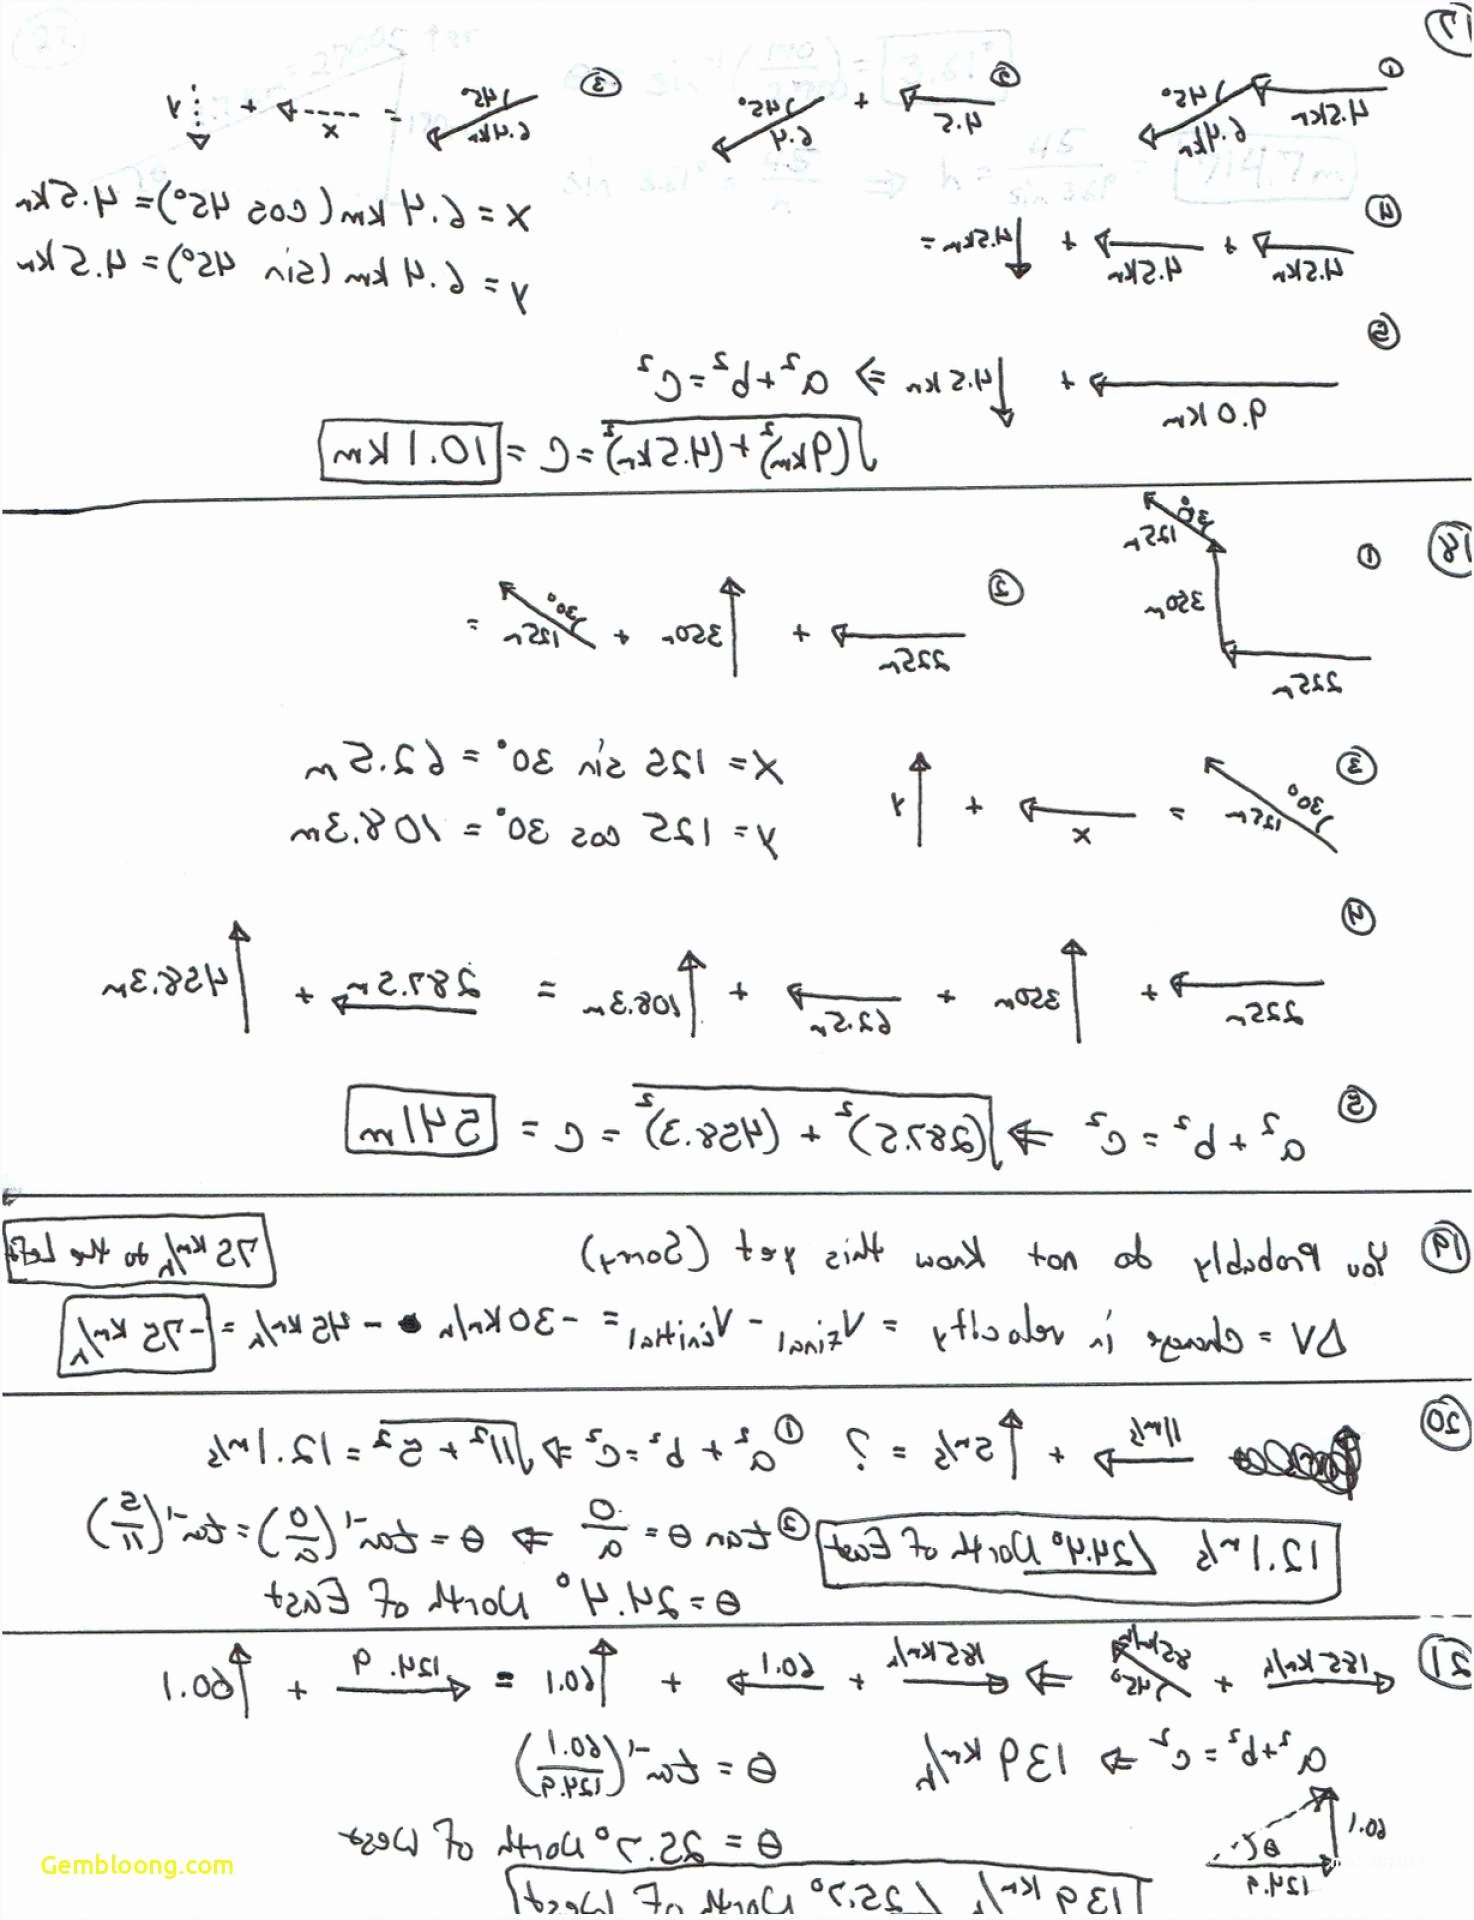 Multiplying Polynomials Worksheet Answers Luxury Multiplying Polynomials Worksheet with Answers